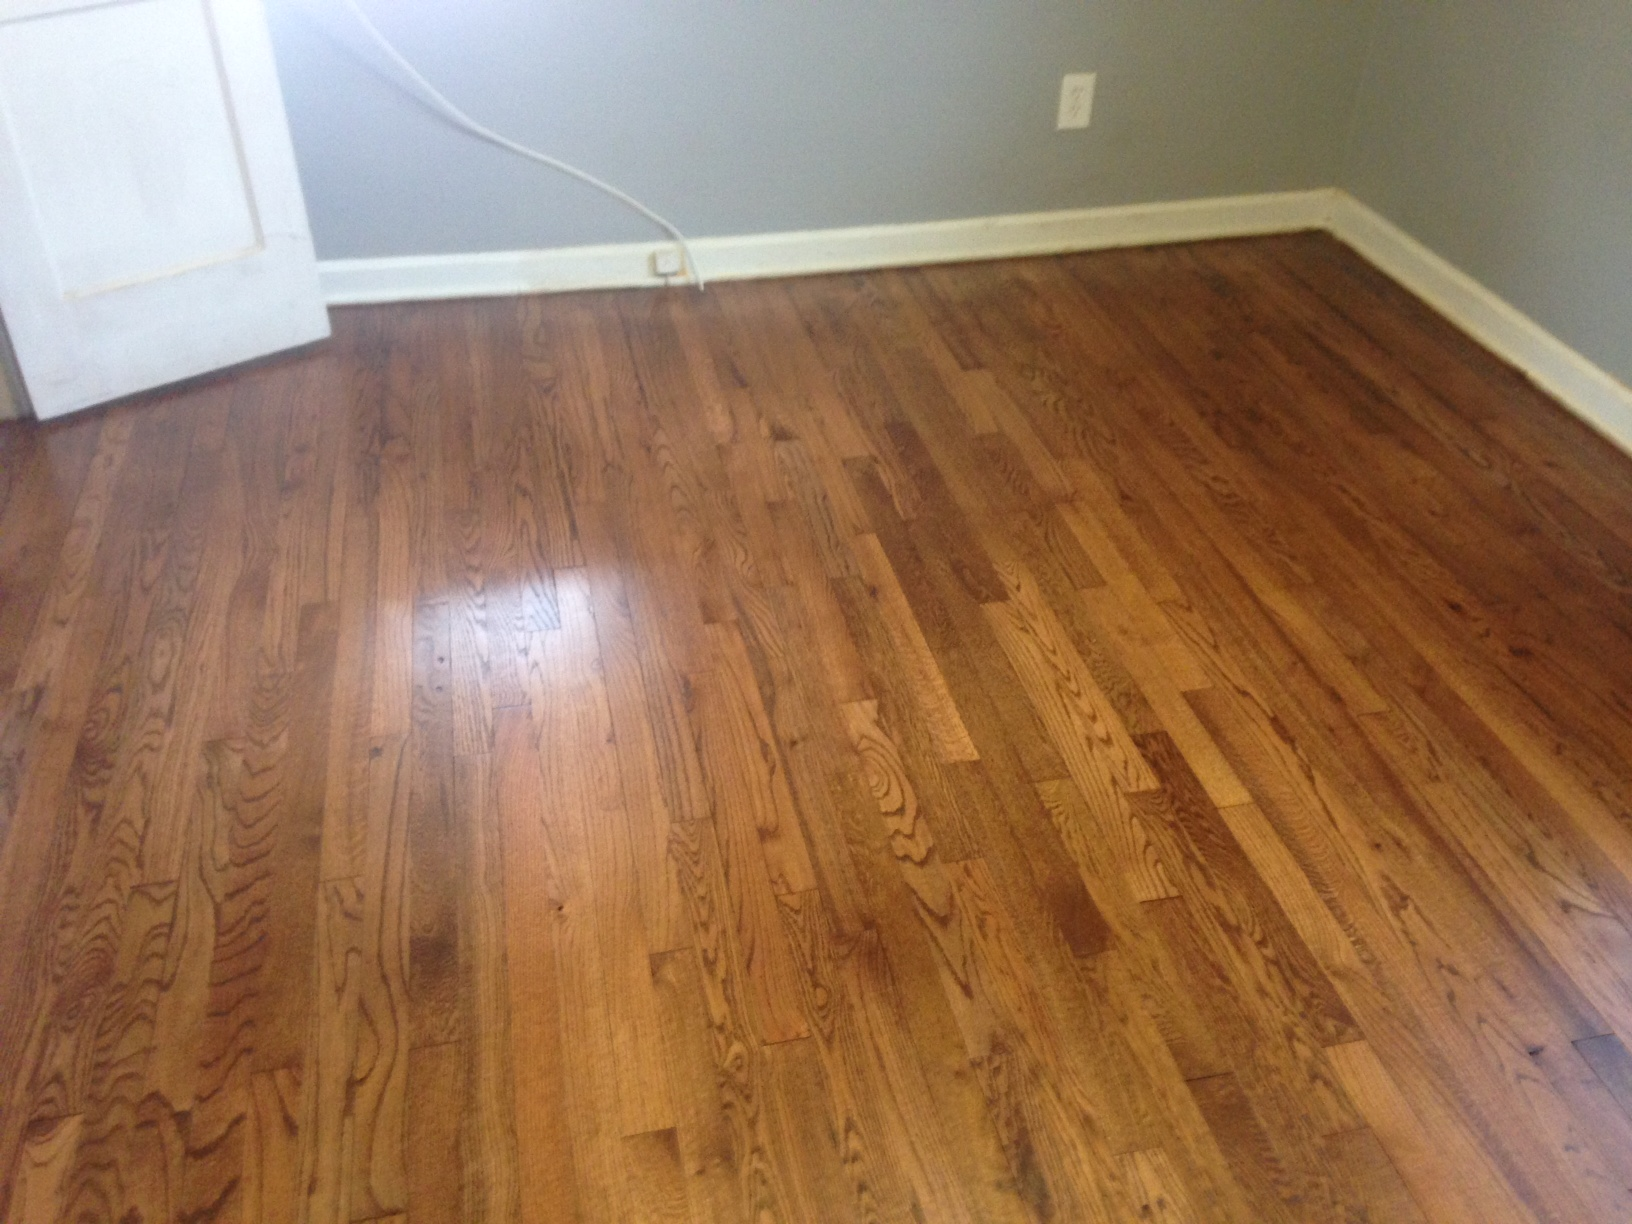 solid red oak wood flooring archives - page 2 of 2 - dan's floor store